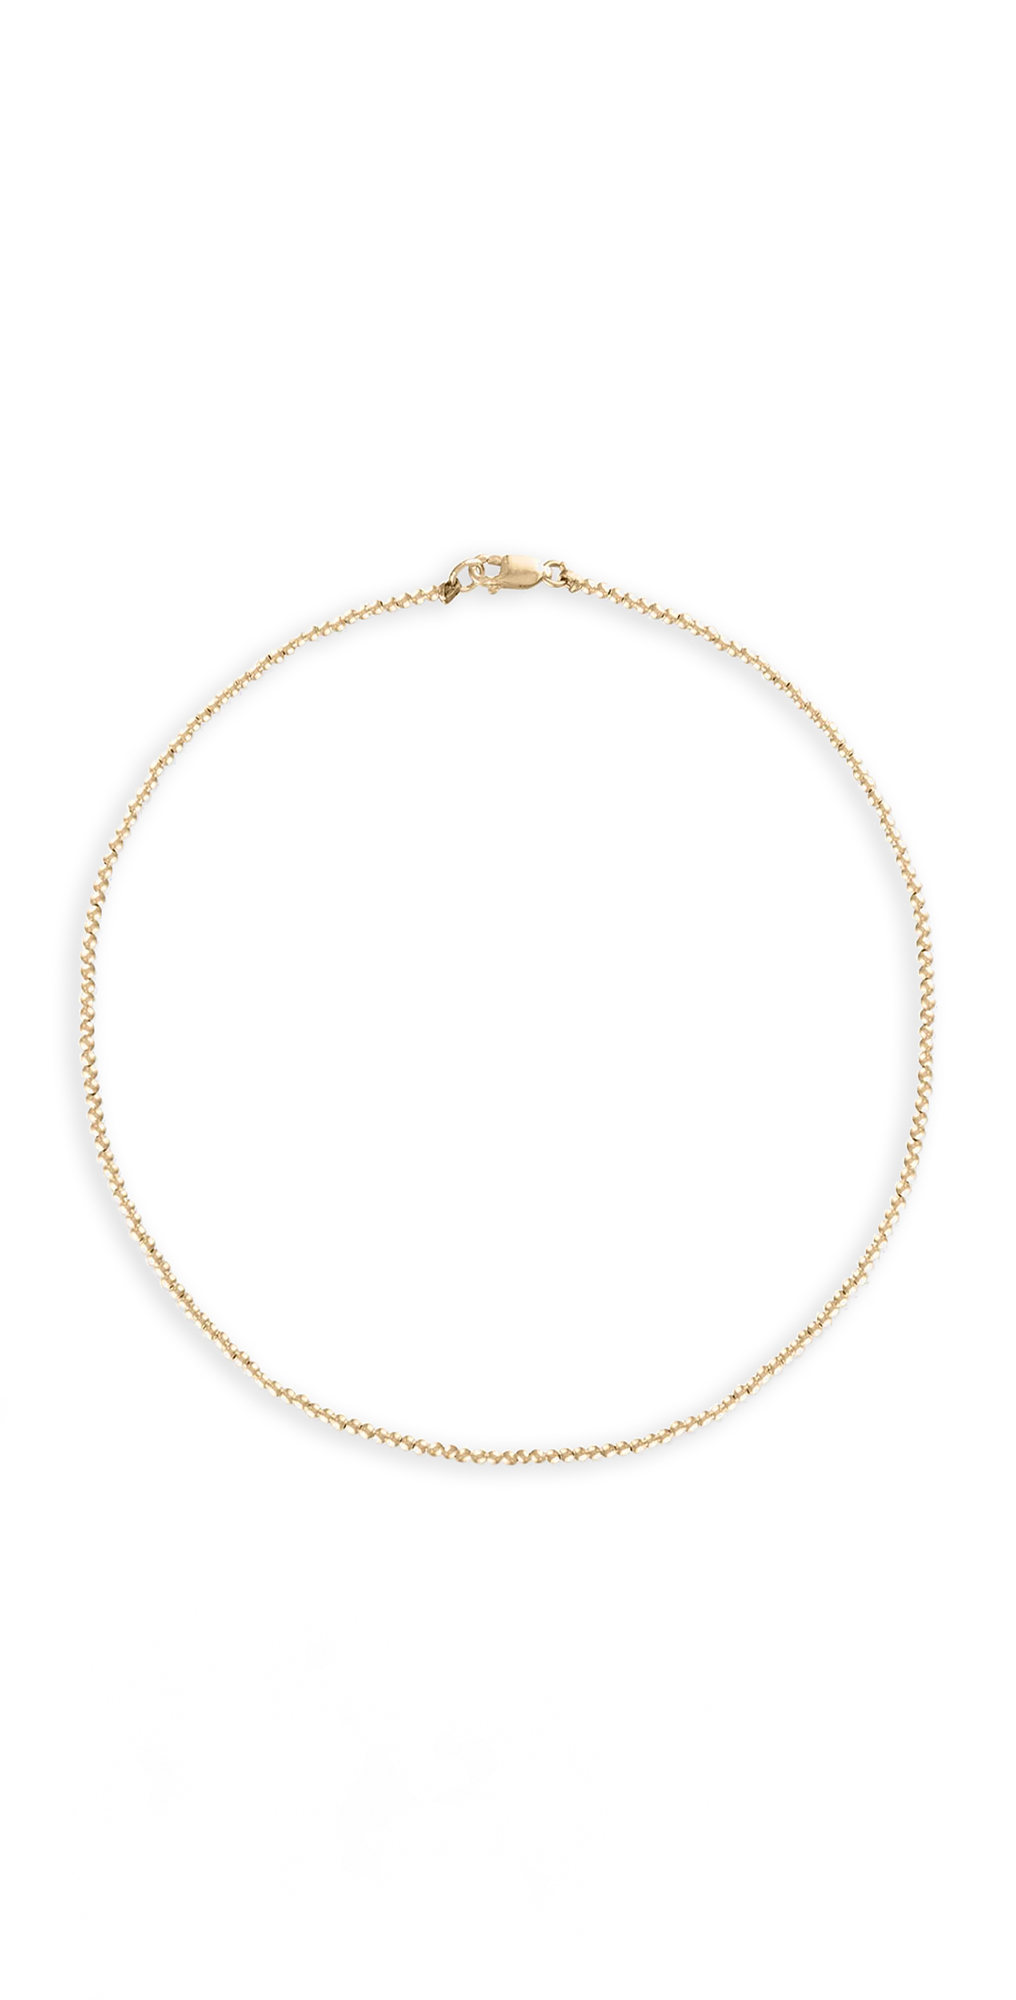 2mm Yellow Gold Necklace